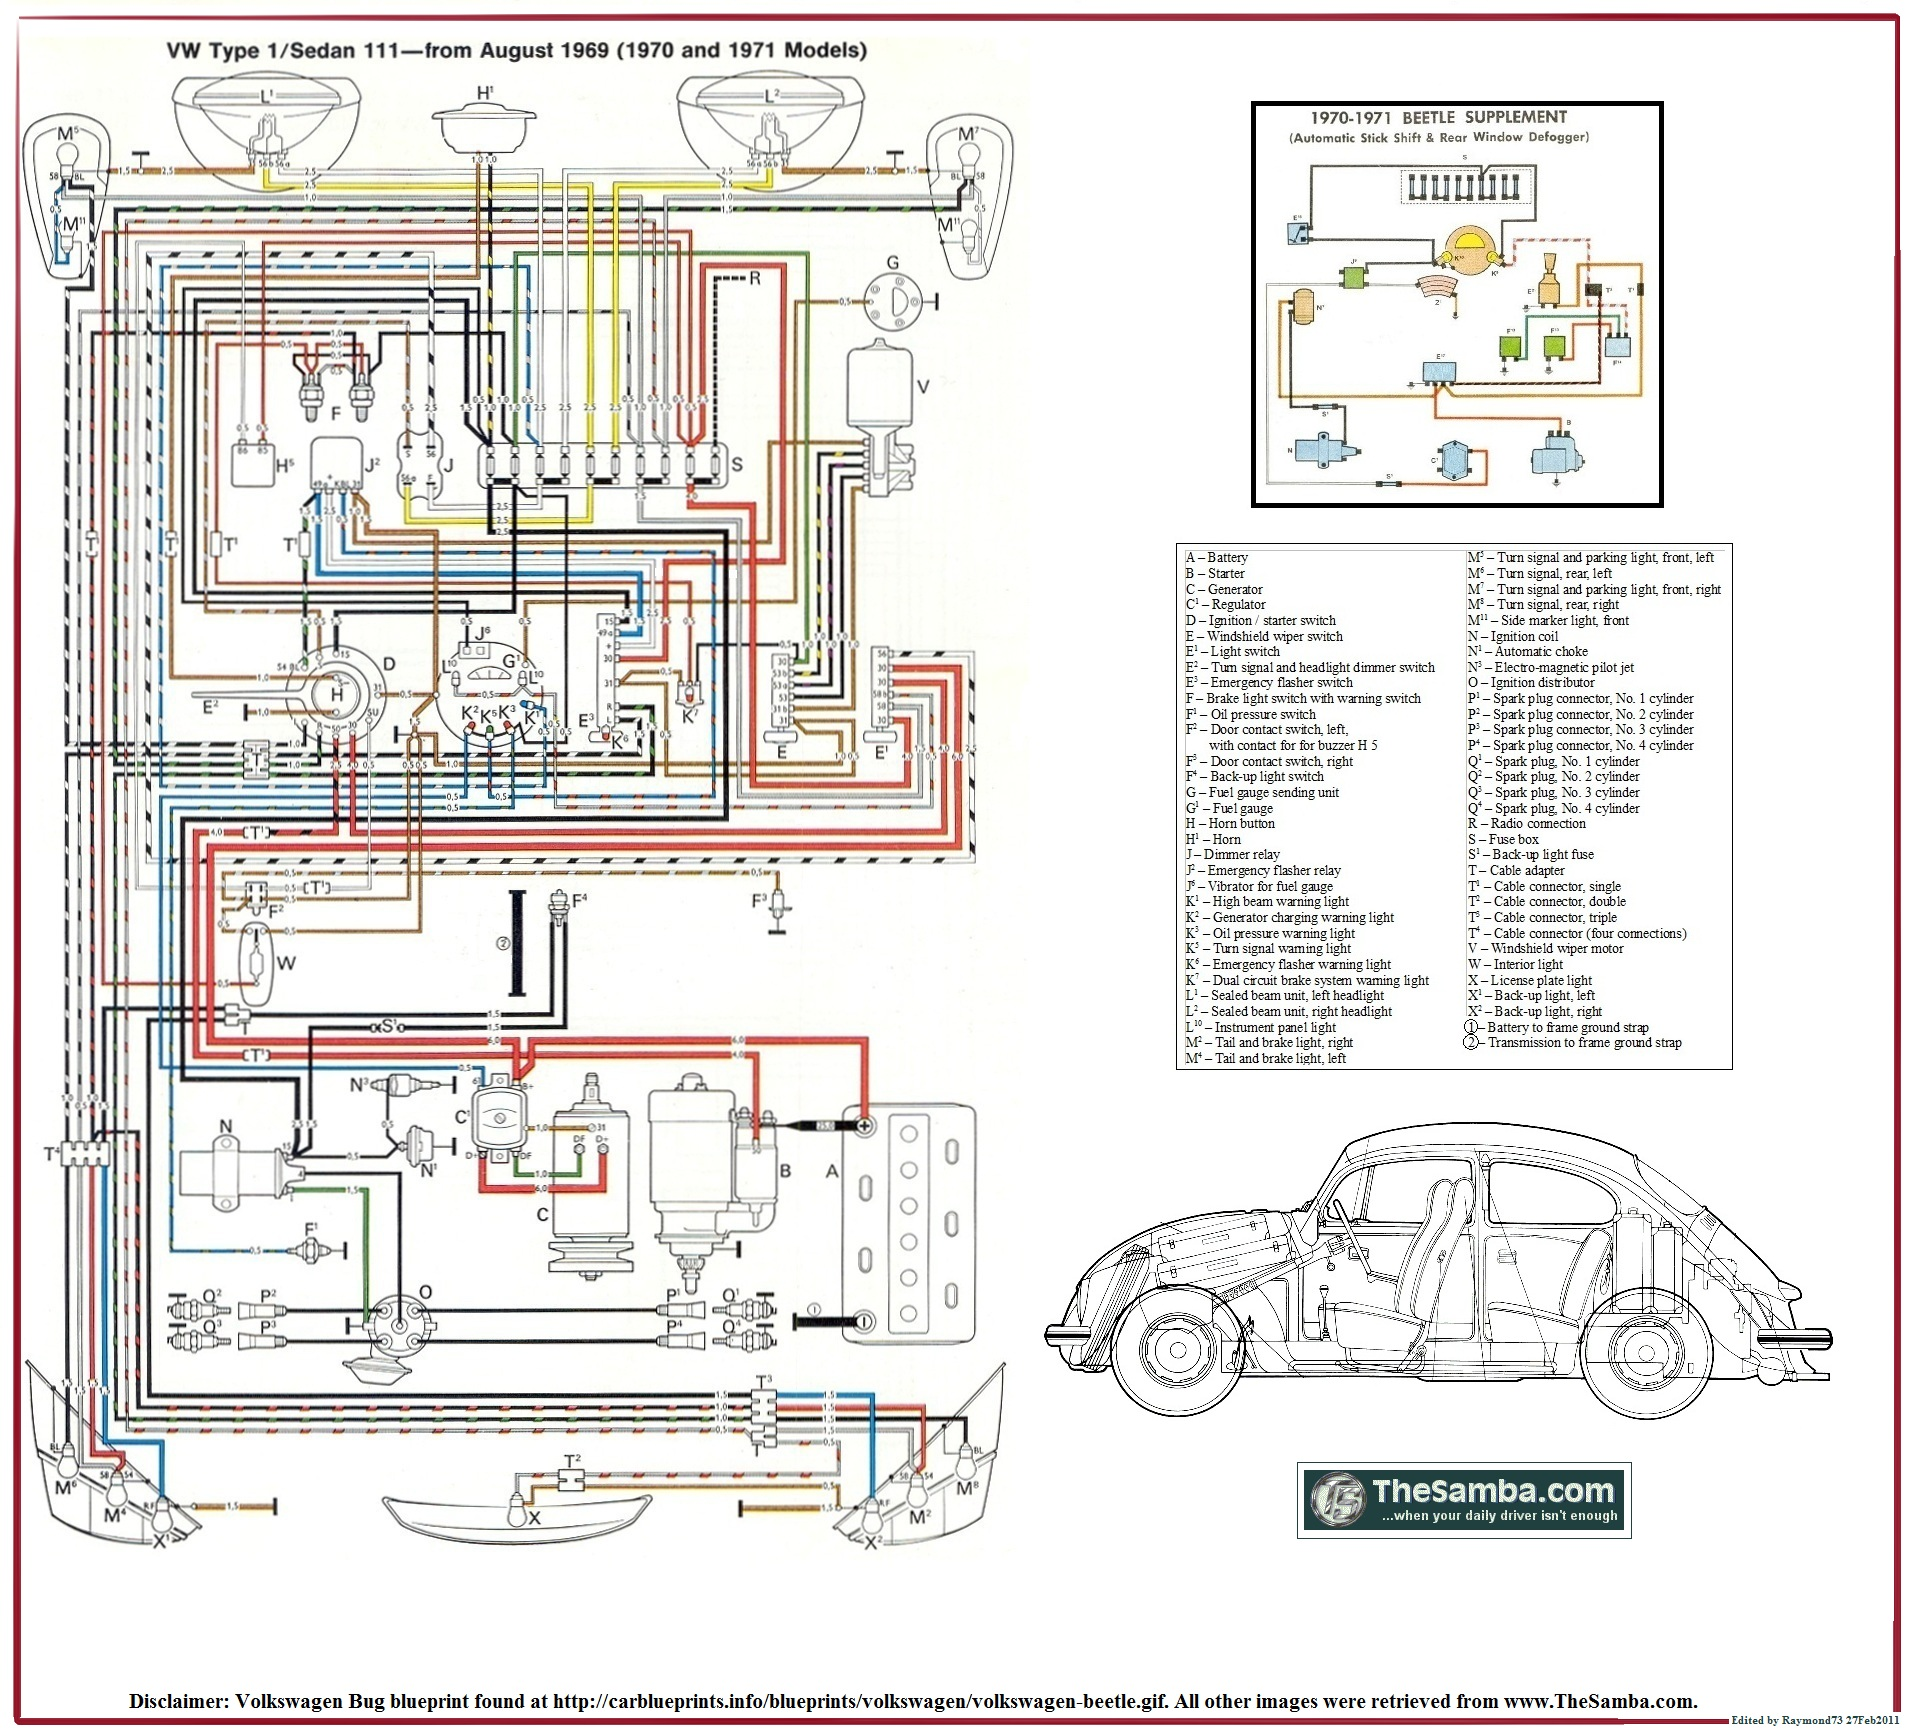 D814b355f04d6018628e90b67c33d714 in addition Type 1 Electrical Equipment moreover Wiring Diagram For 1974 Vw Beetle likewise 111953513F together with VW Tech Article Headlight Switches Alt. on 1971 vw super beetle ignition switch wiring diagram